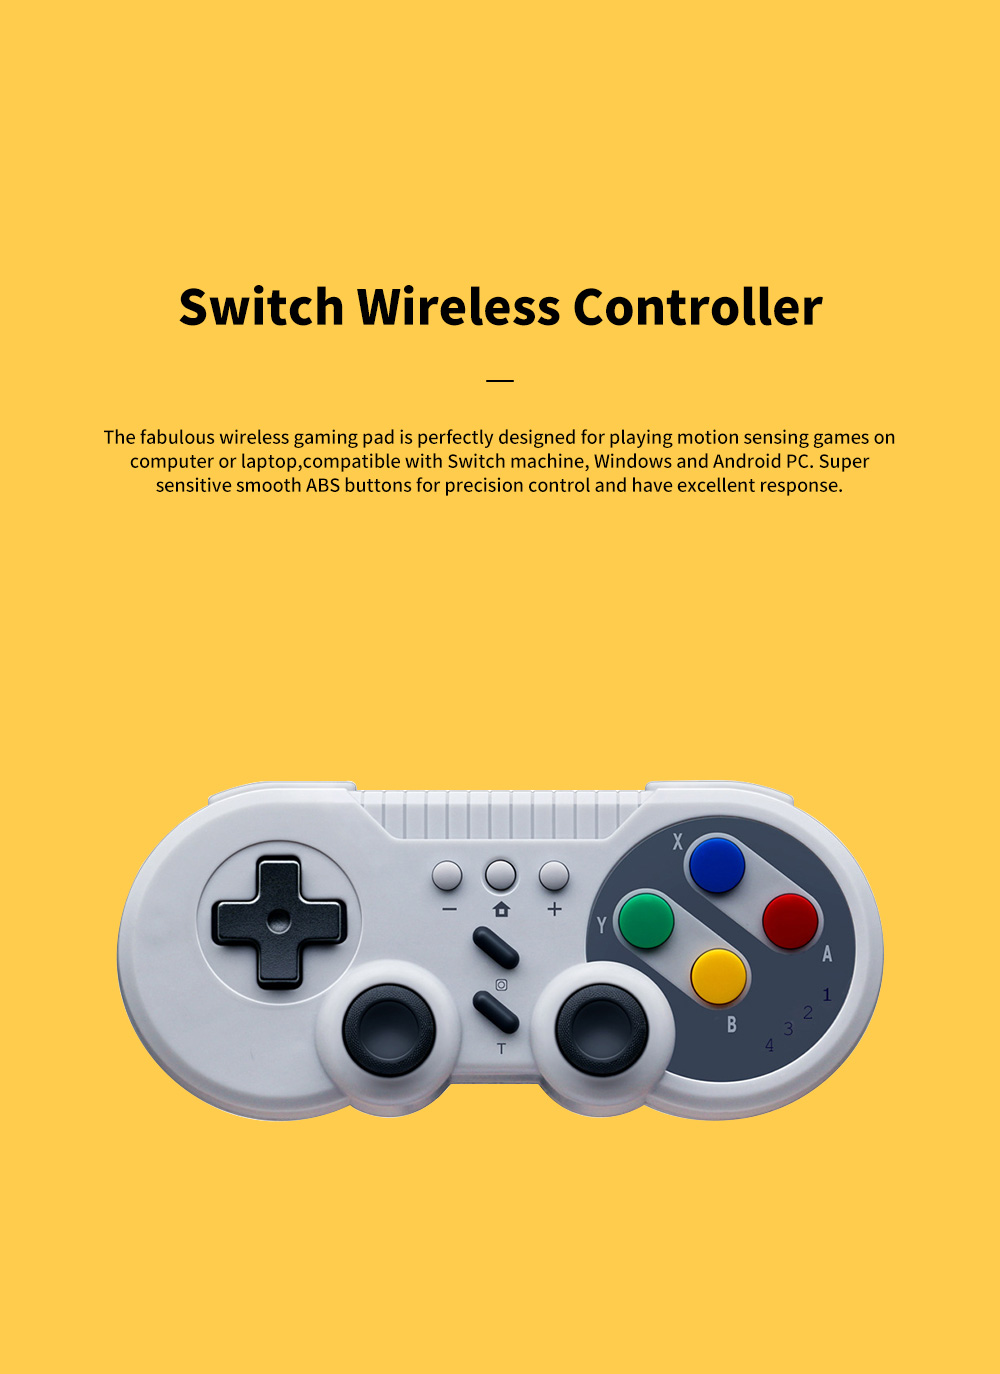 Switch Lite Pro Xbox 360 PS4 Offwhite Wireless Bluetooth Gaming Joypad Light Weight Motion Sensing Games Joystick Controller 0